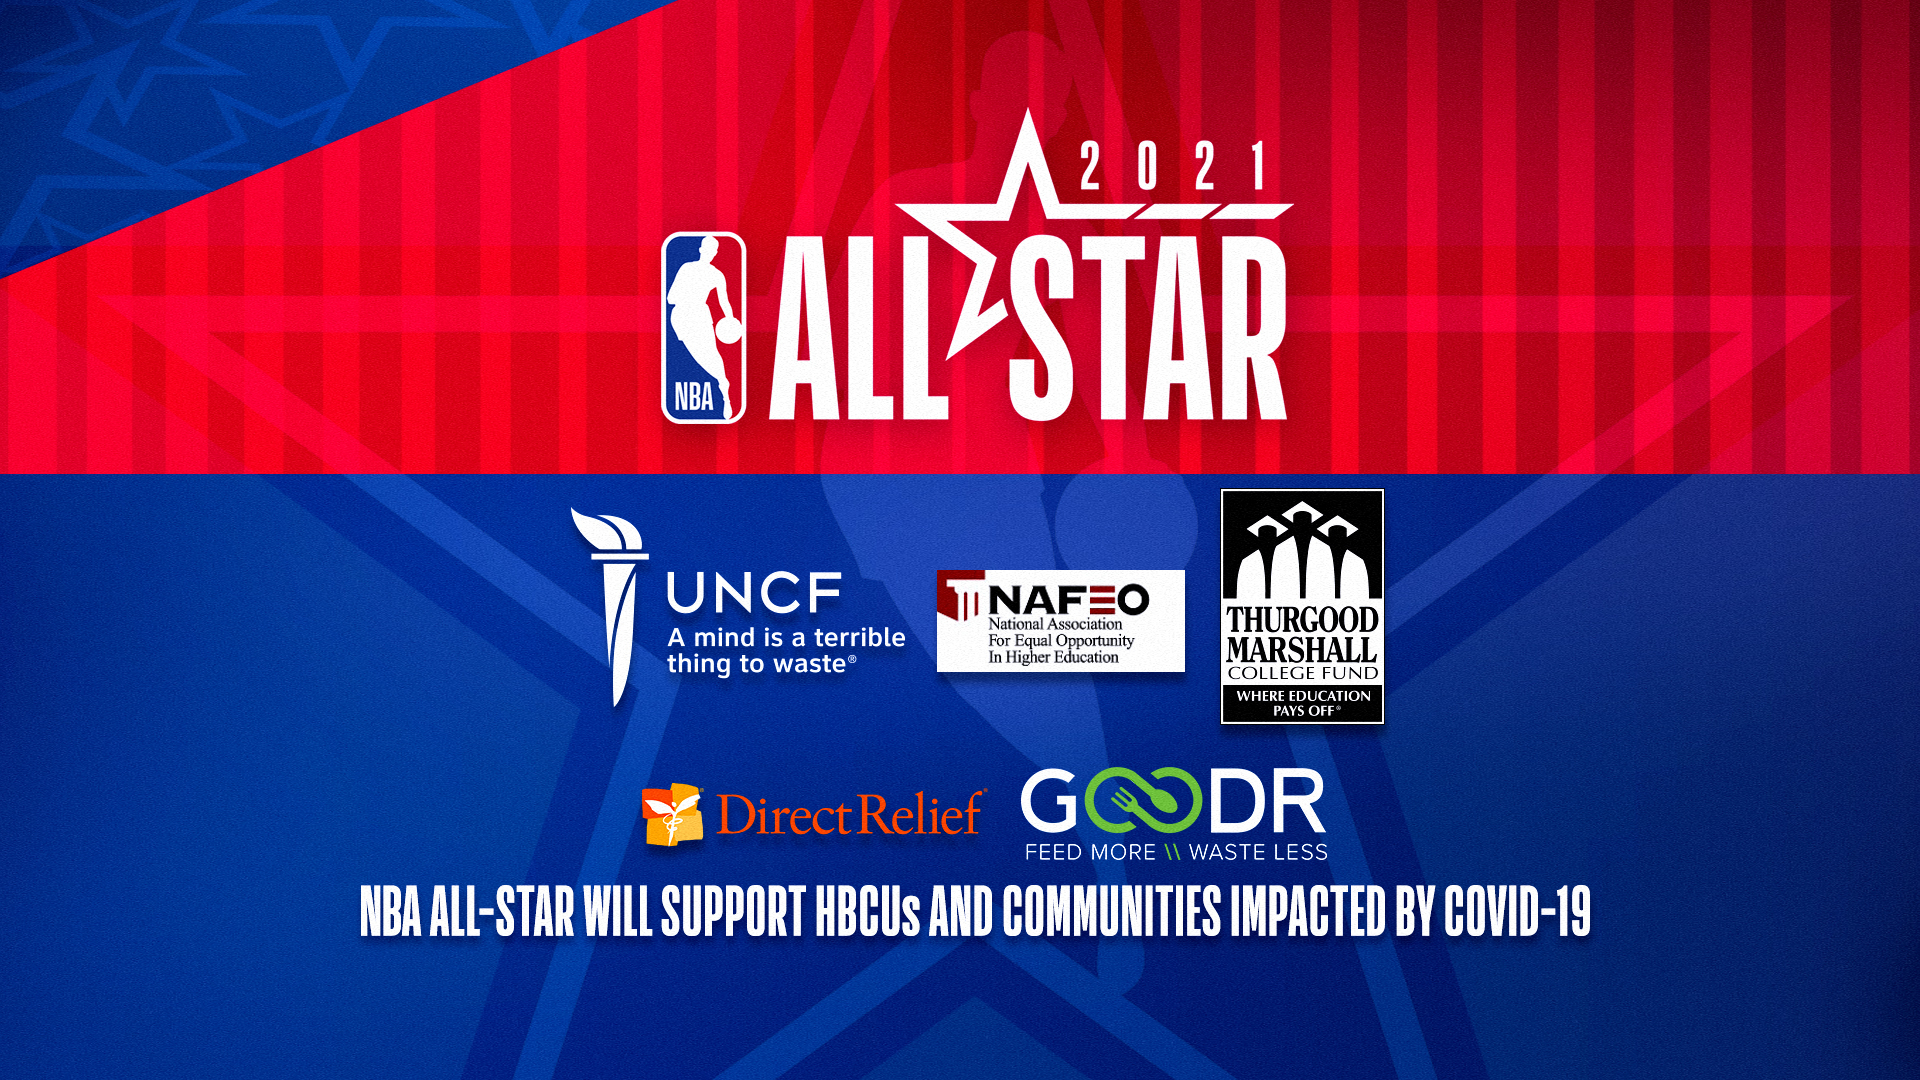 More than $3M to be donated in initial support as part of NBA All-Star 2021